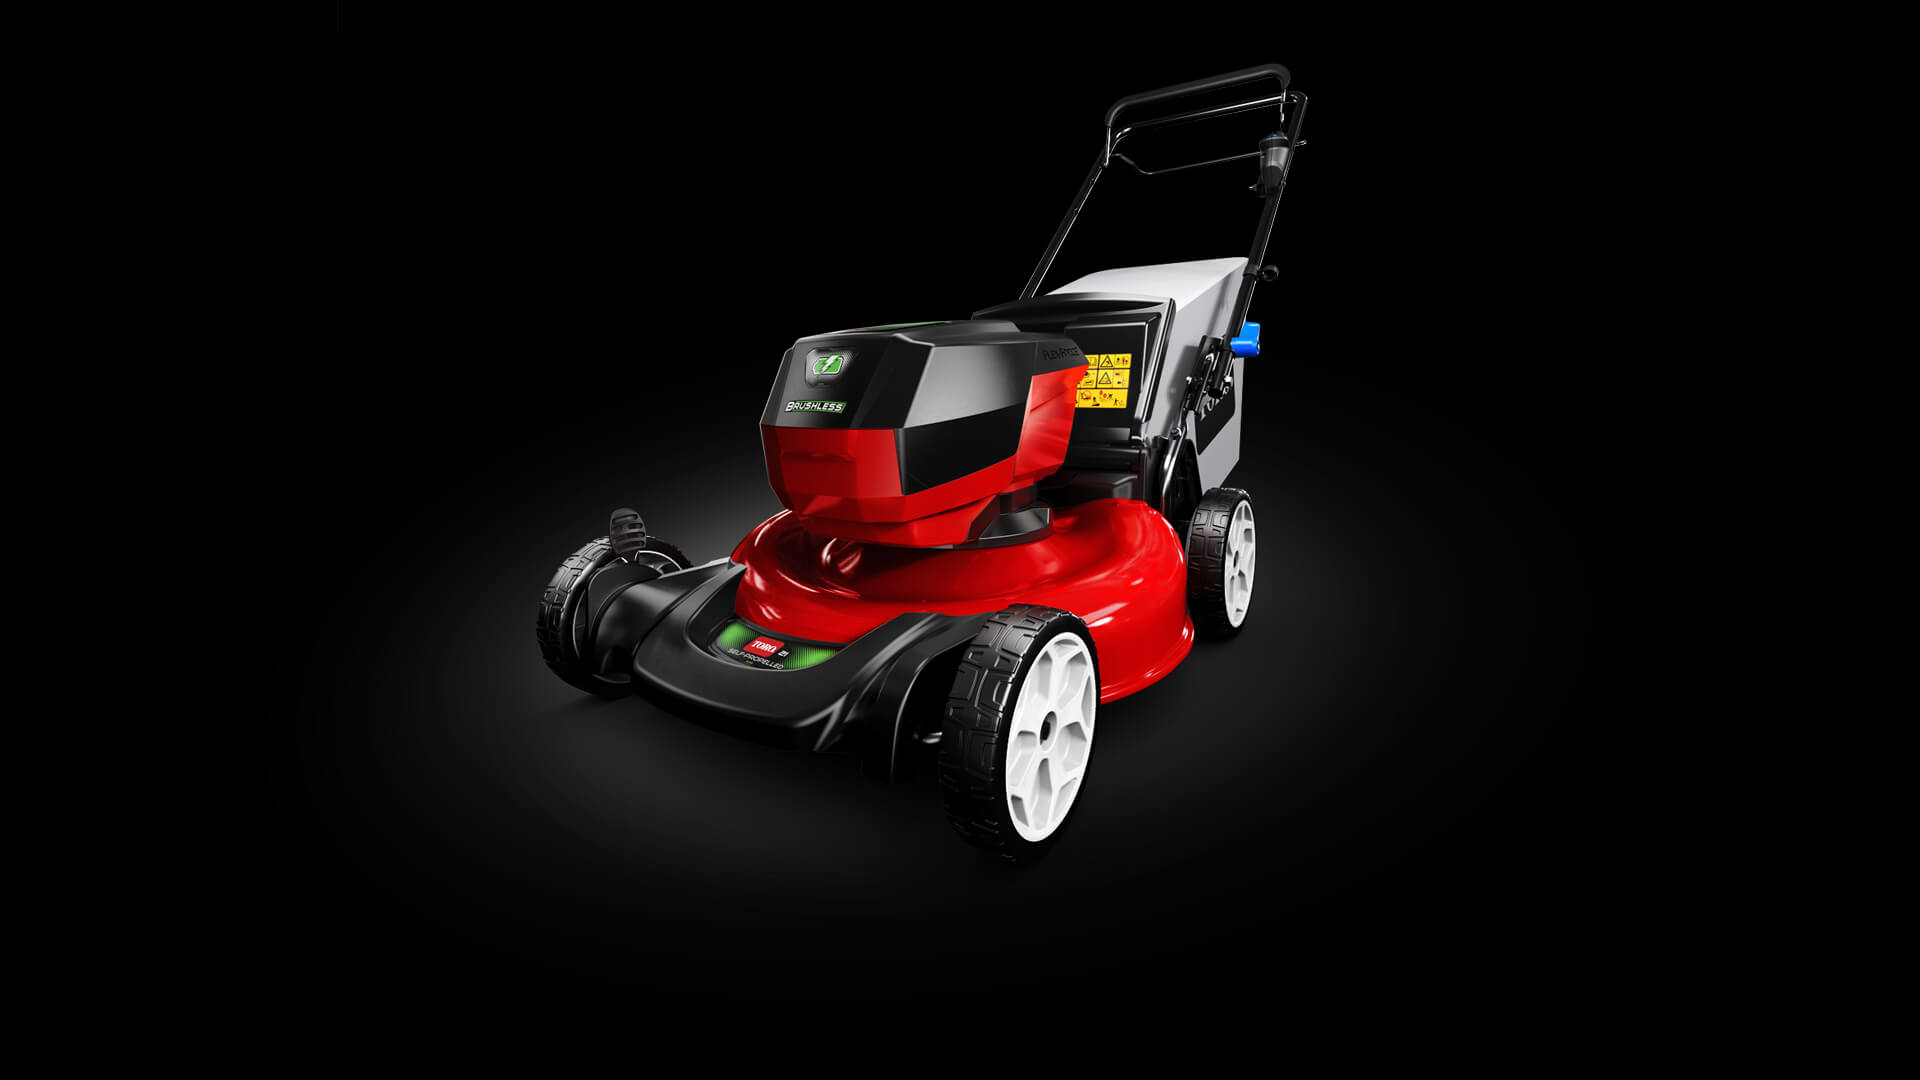 rotated side view of mower